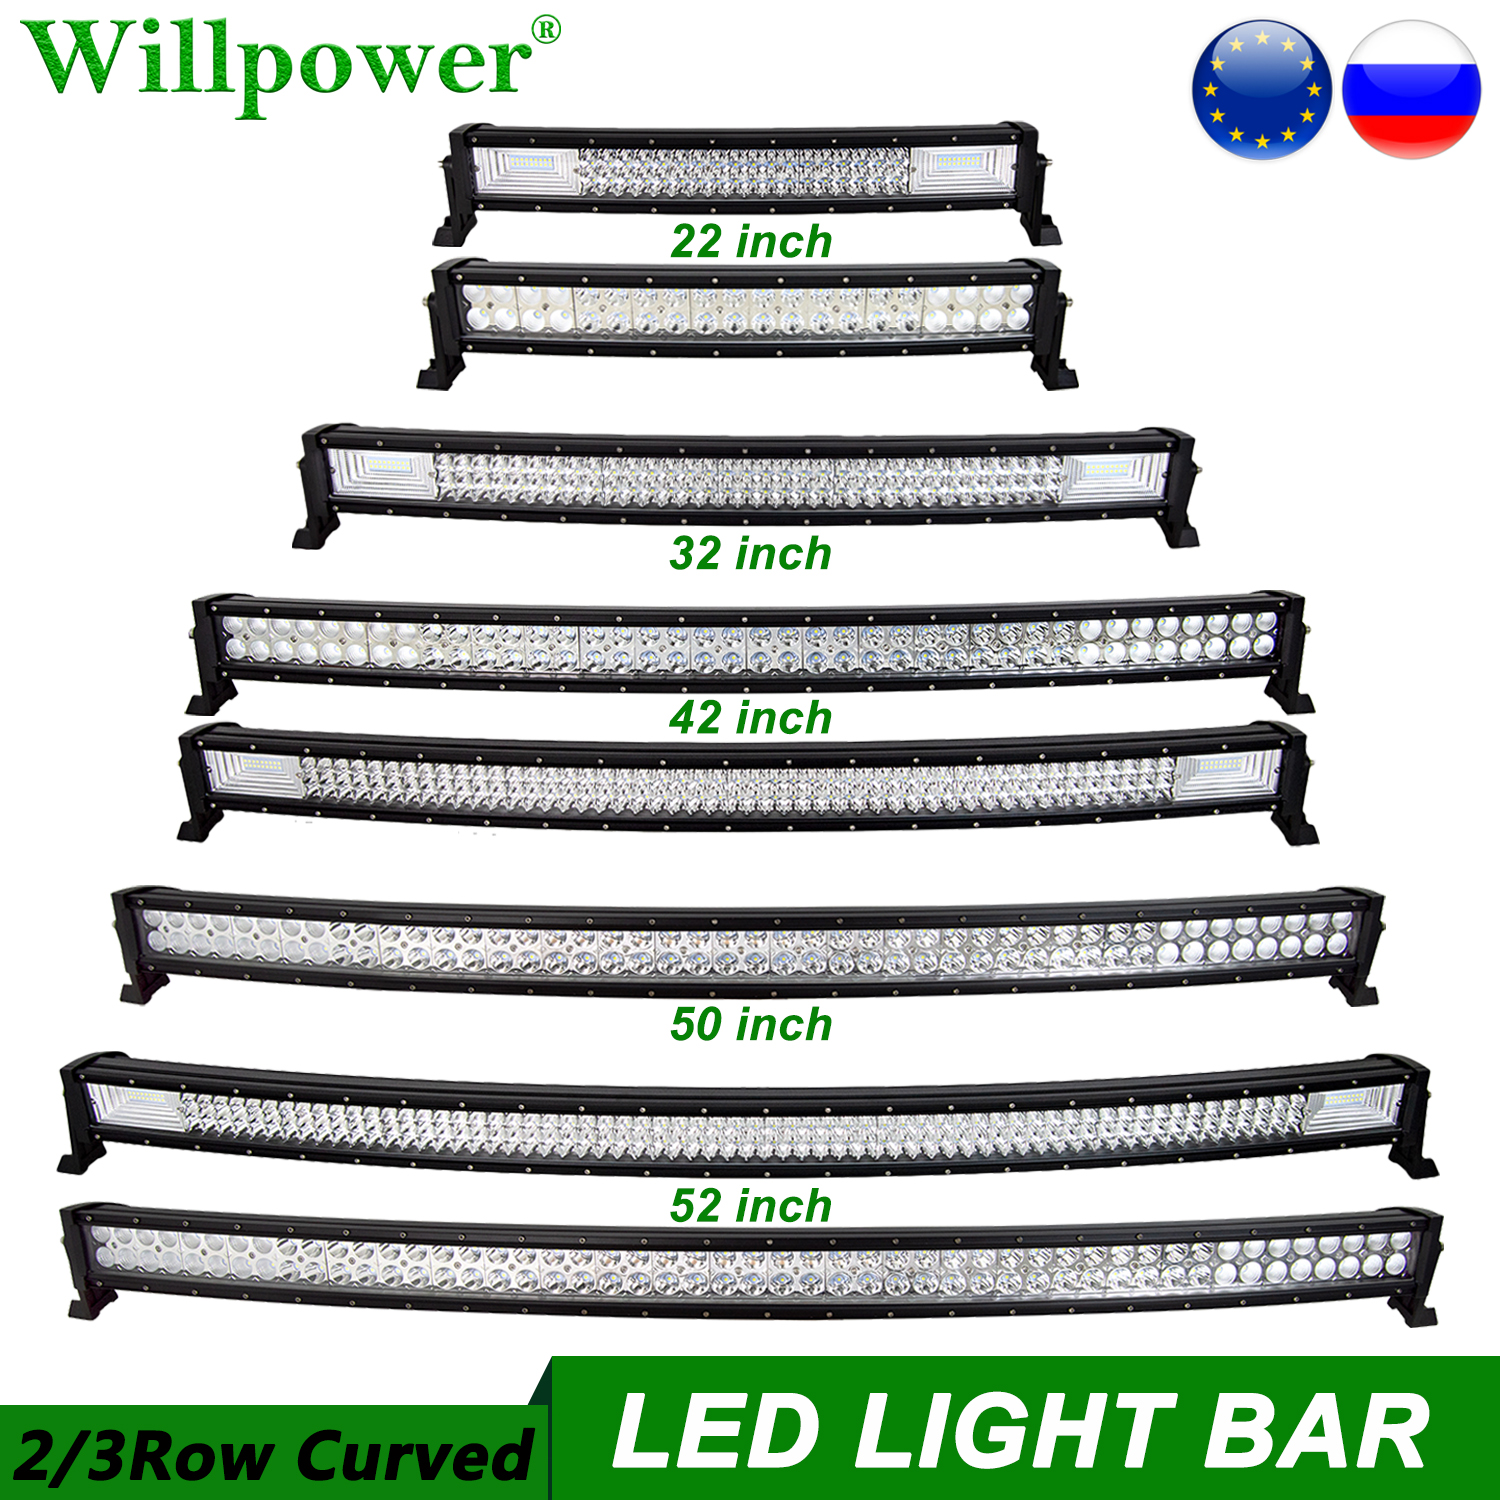 SUV Car Roof 22 32 42 50 52 inch Curved LED Light Bar For Jeep Dodge Chevy 4x4 Truck Lightbar Offroad Driving LED Bar 2 3 Rows